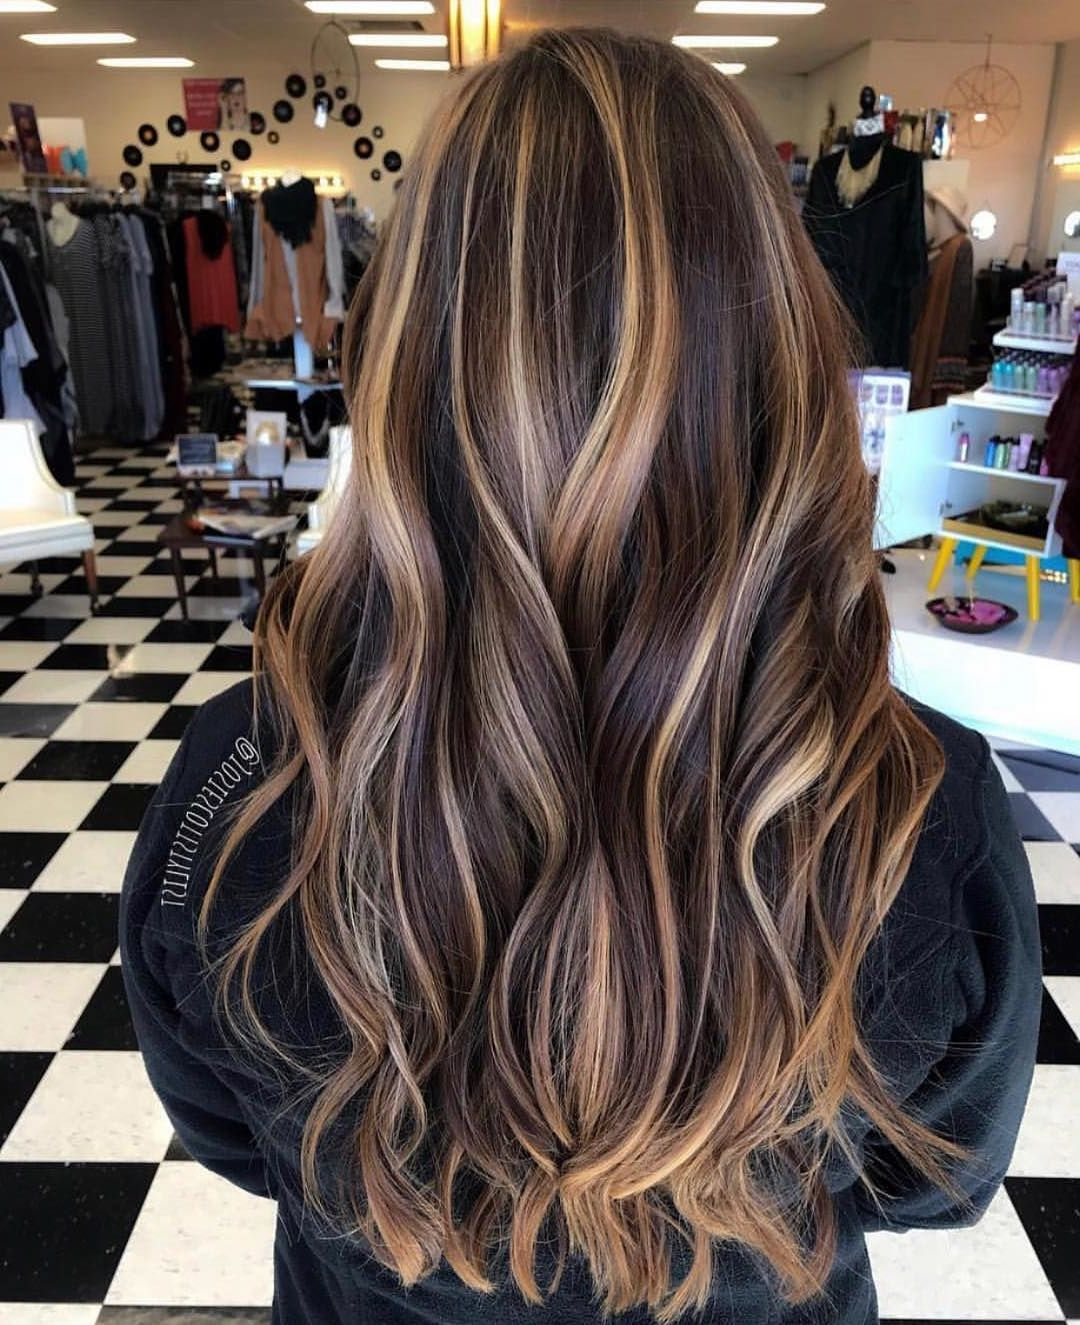 22 Exquisitely Creative Hair Color Ideas